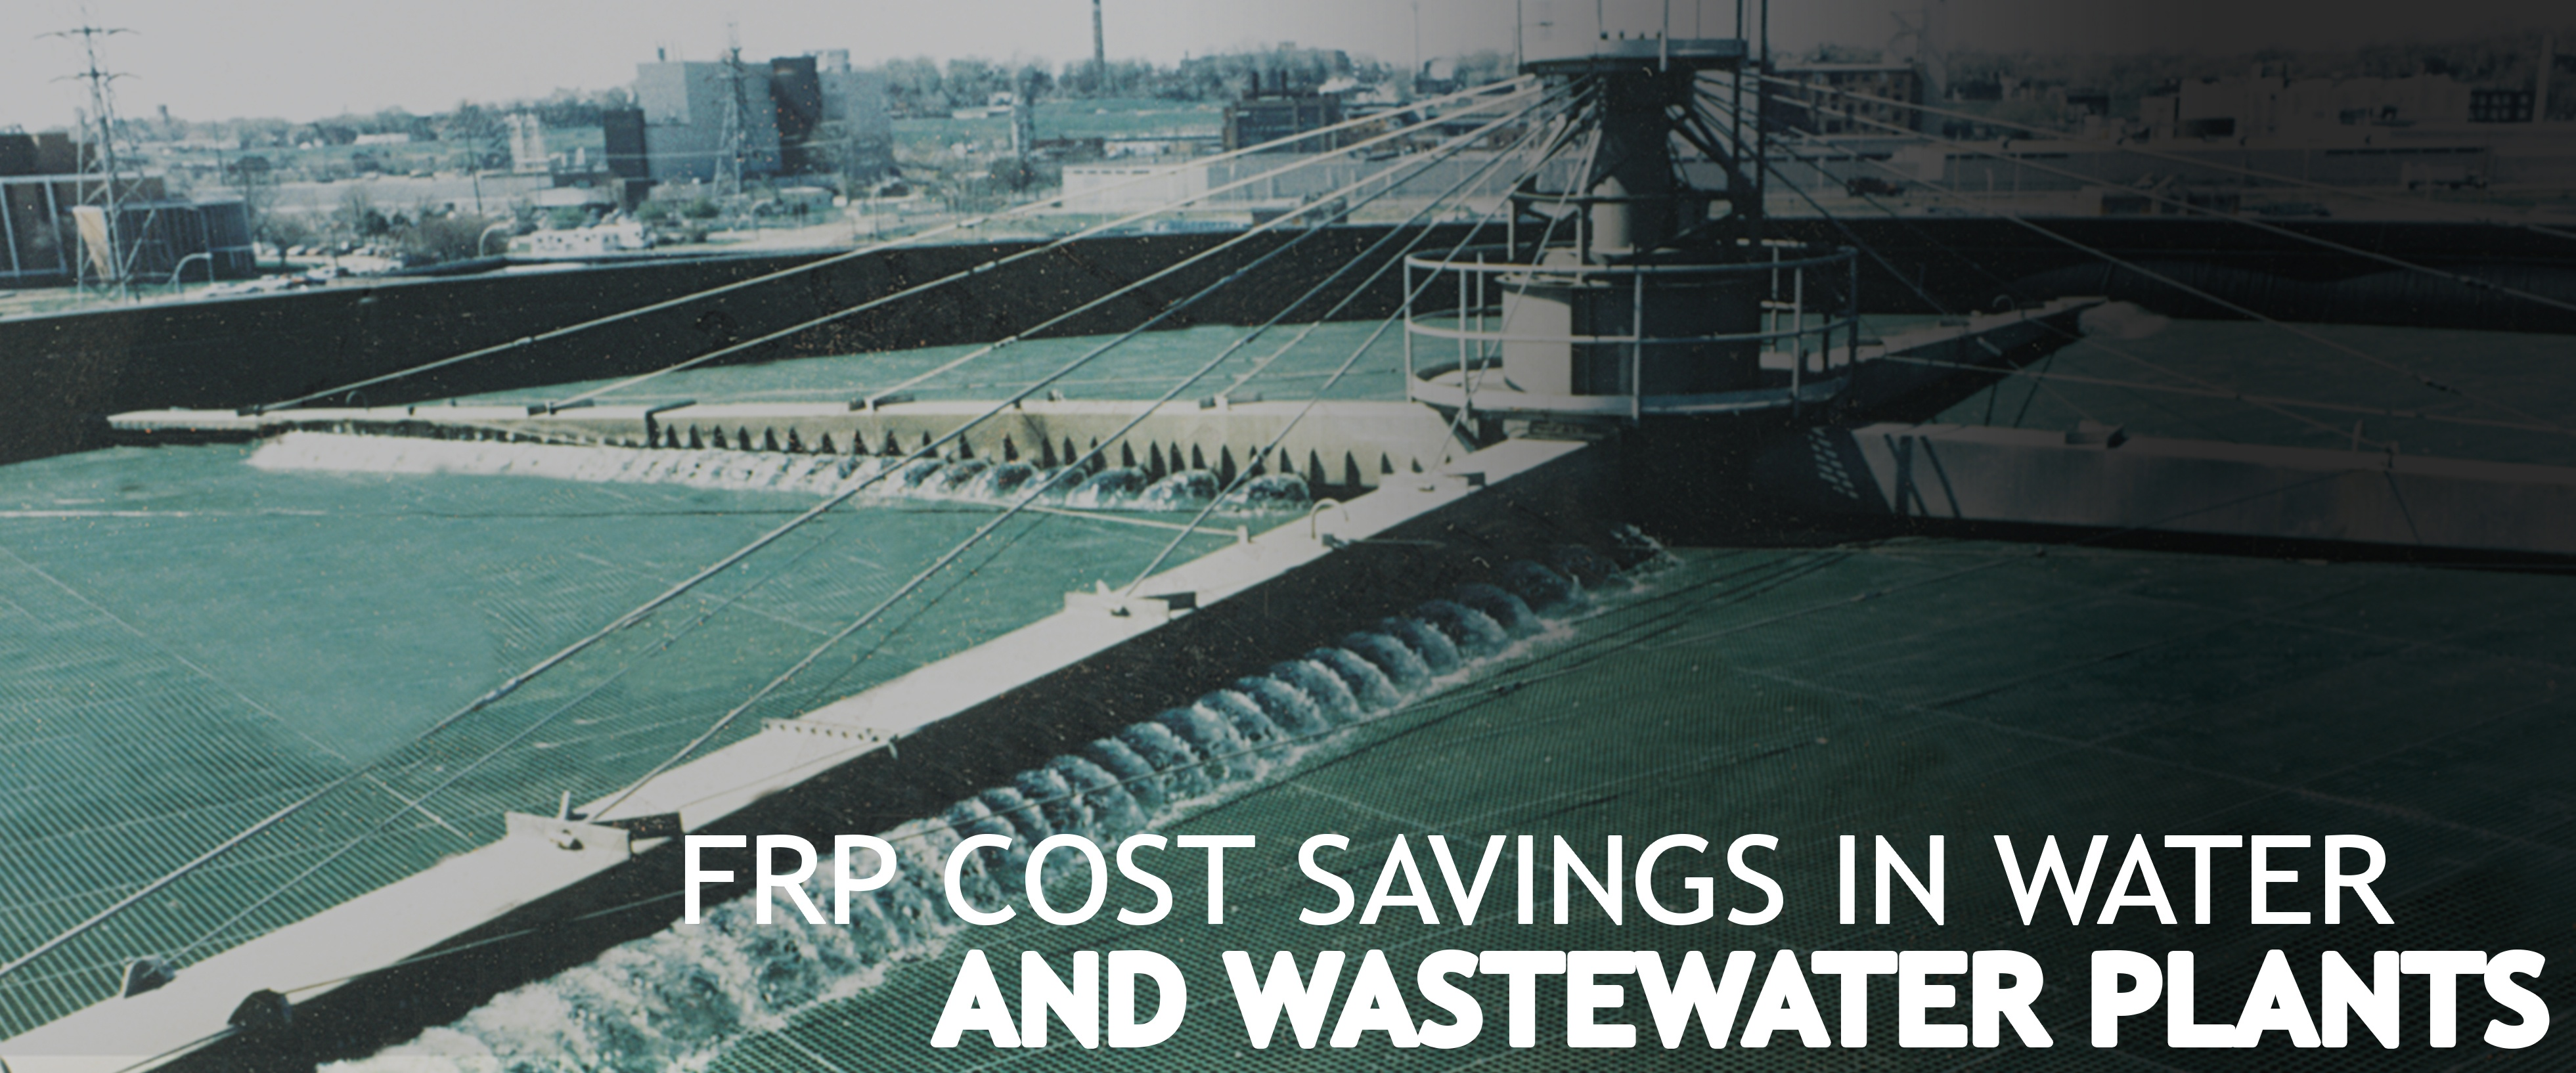 FRP-Costs-Savings-in-Water-and-Wastewater-Treatment-Applications.jpg